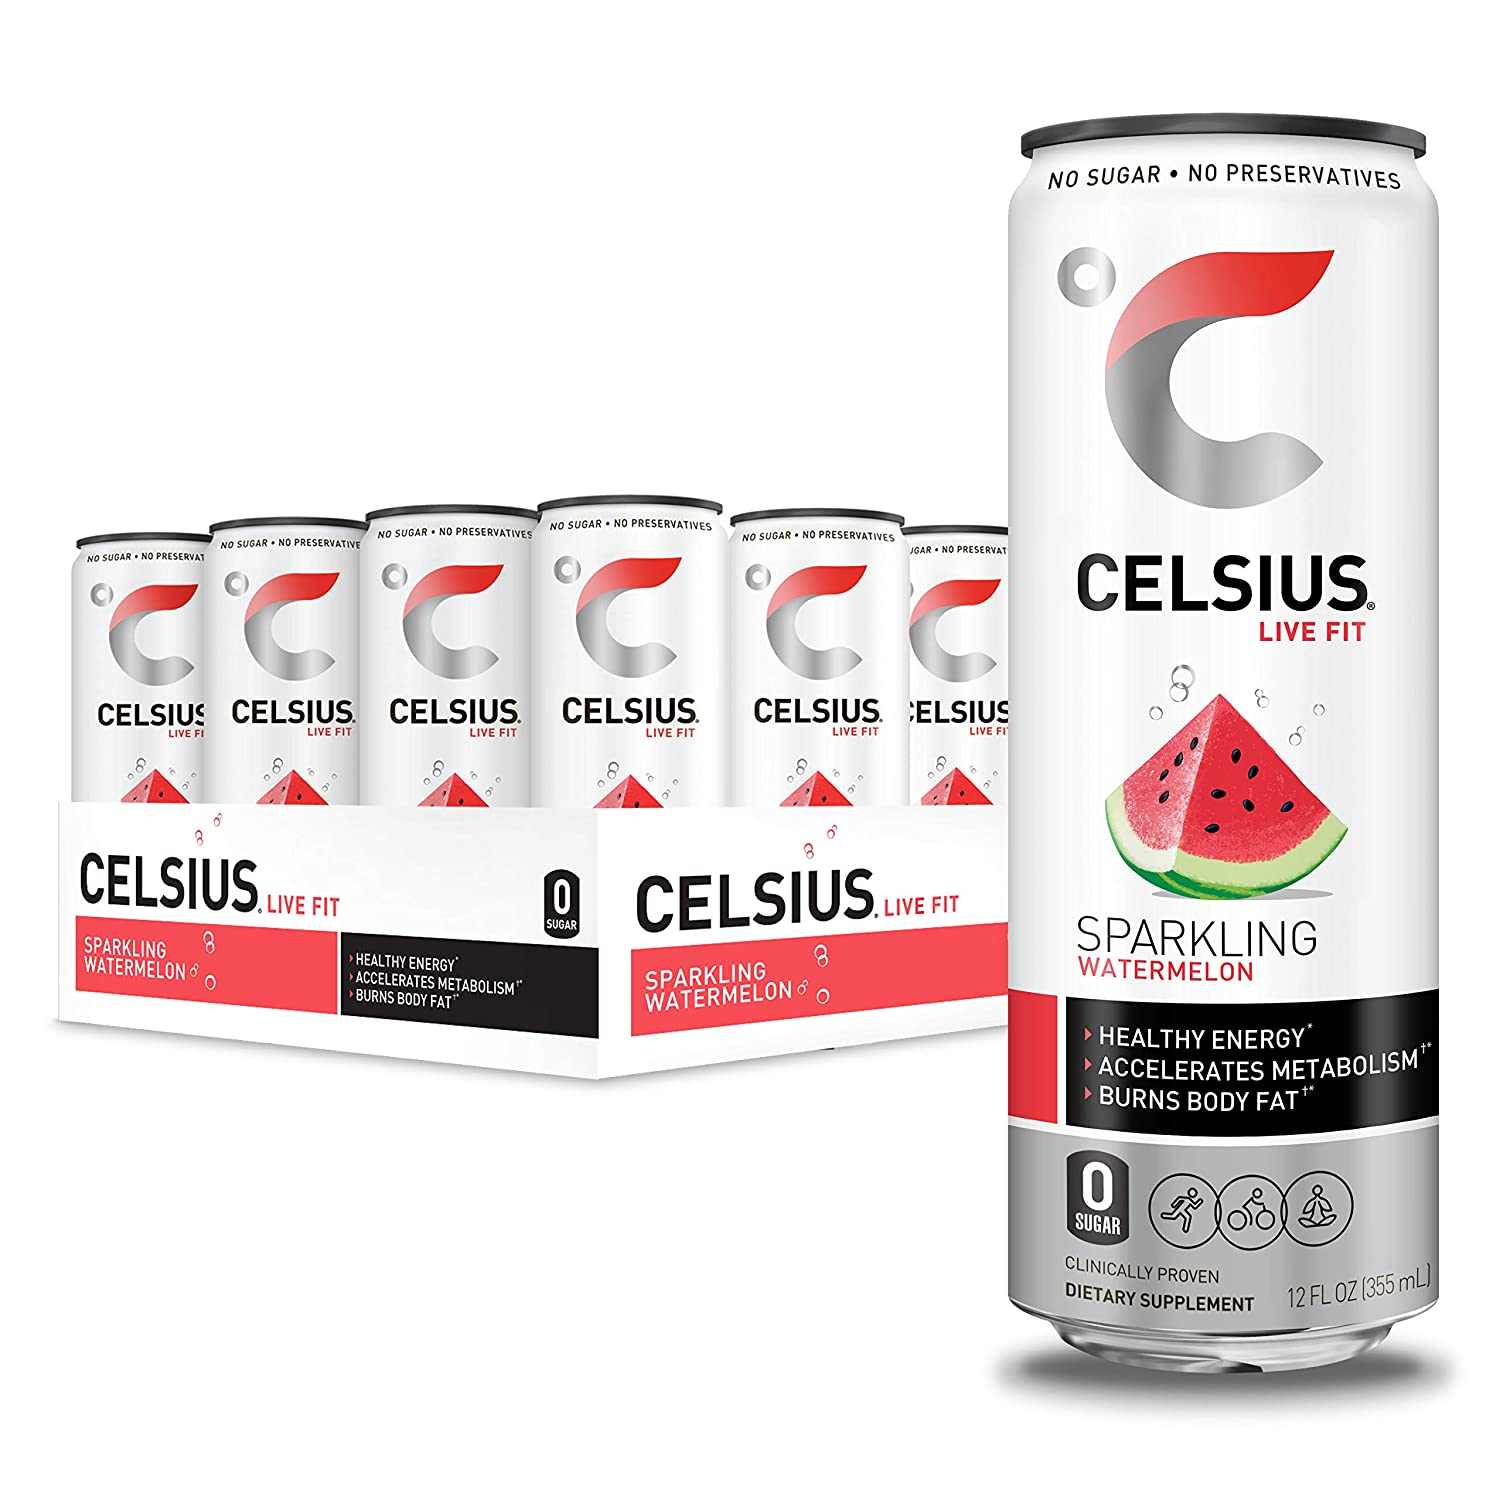 CELSIUS Sparkling Watermelon Fitness Drink, Zero Sugar, 12oz. Slim Can, 12 Pack